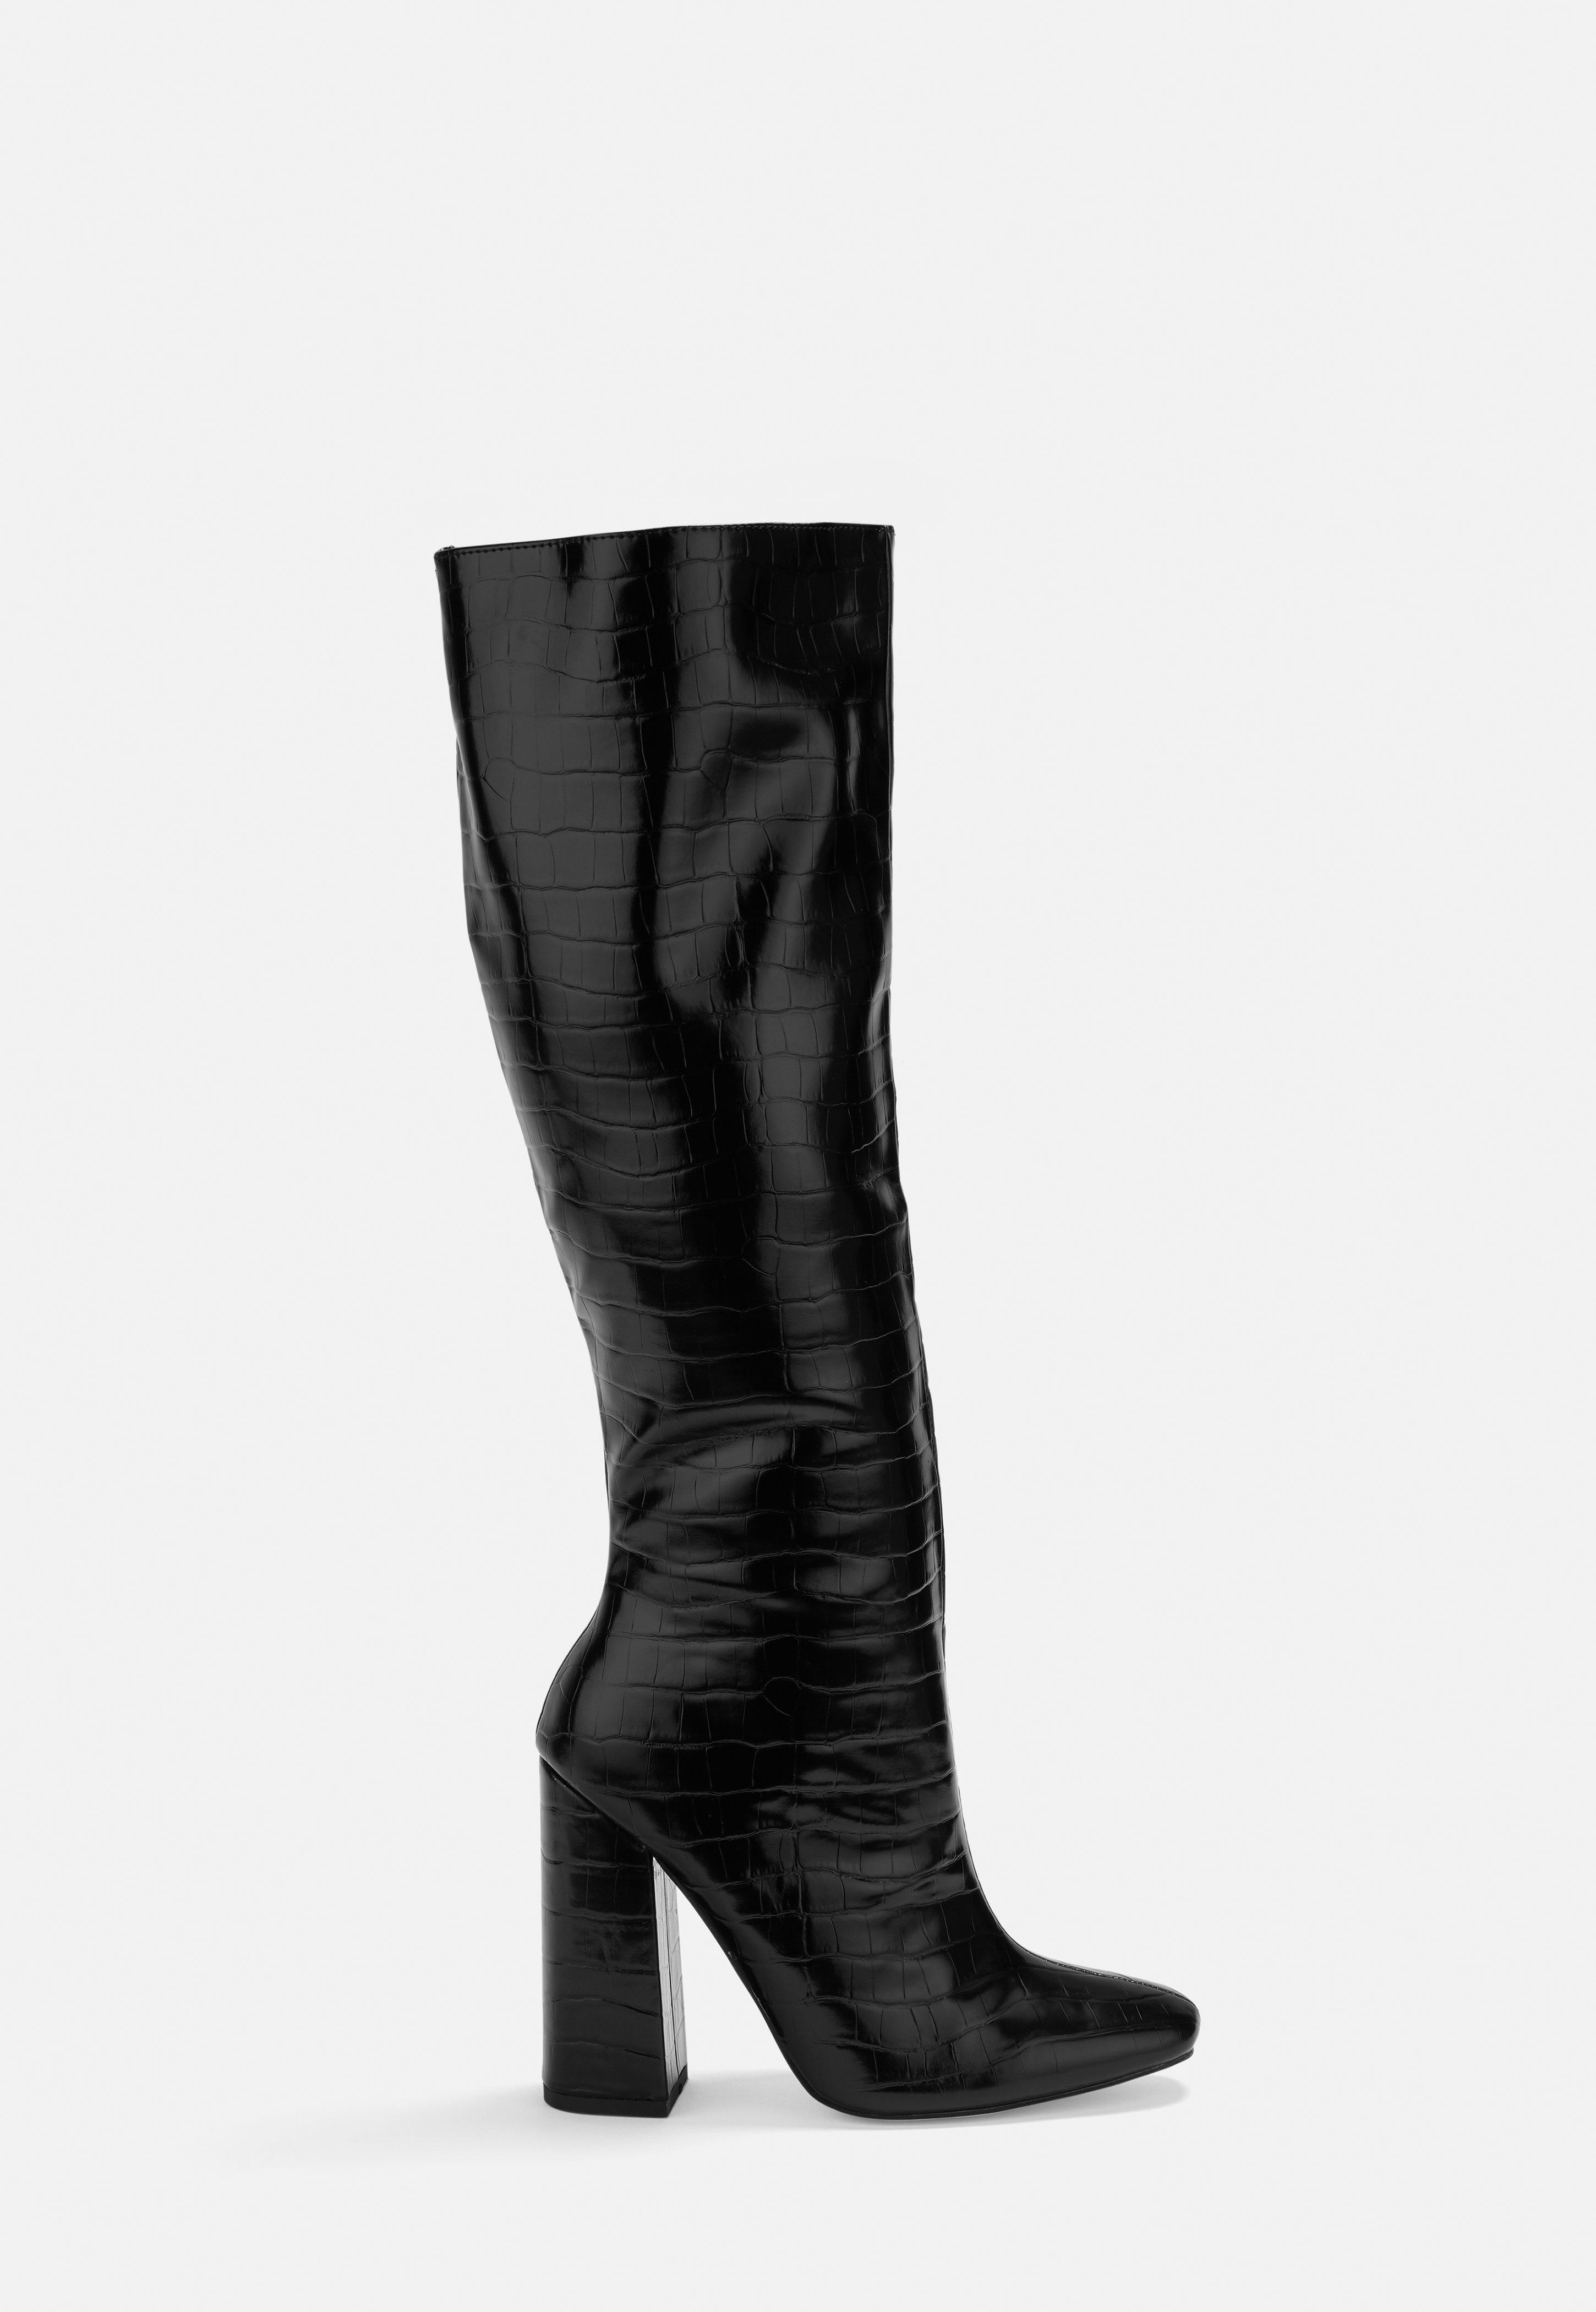 4ec8d8e7343 Black Croc Calf Height Heeled Boots